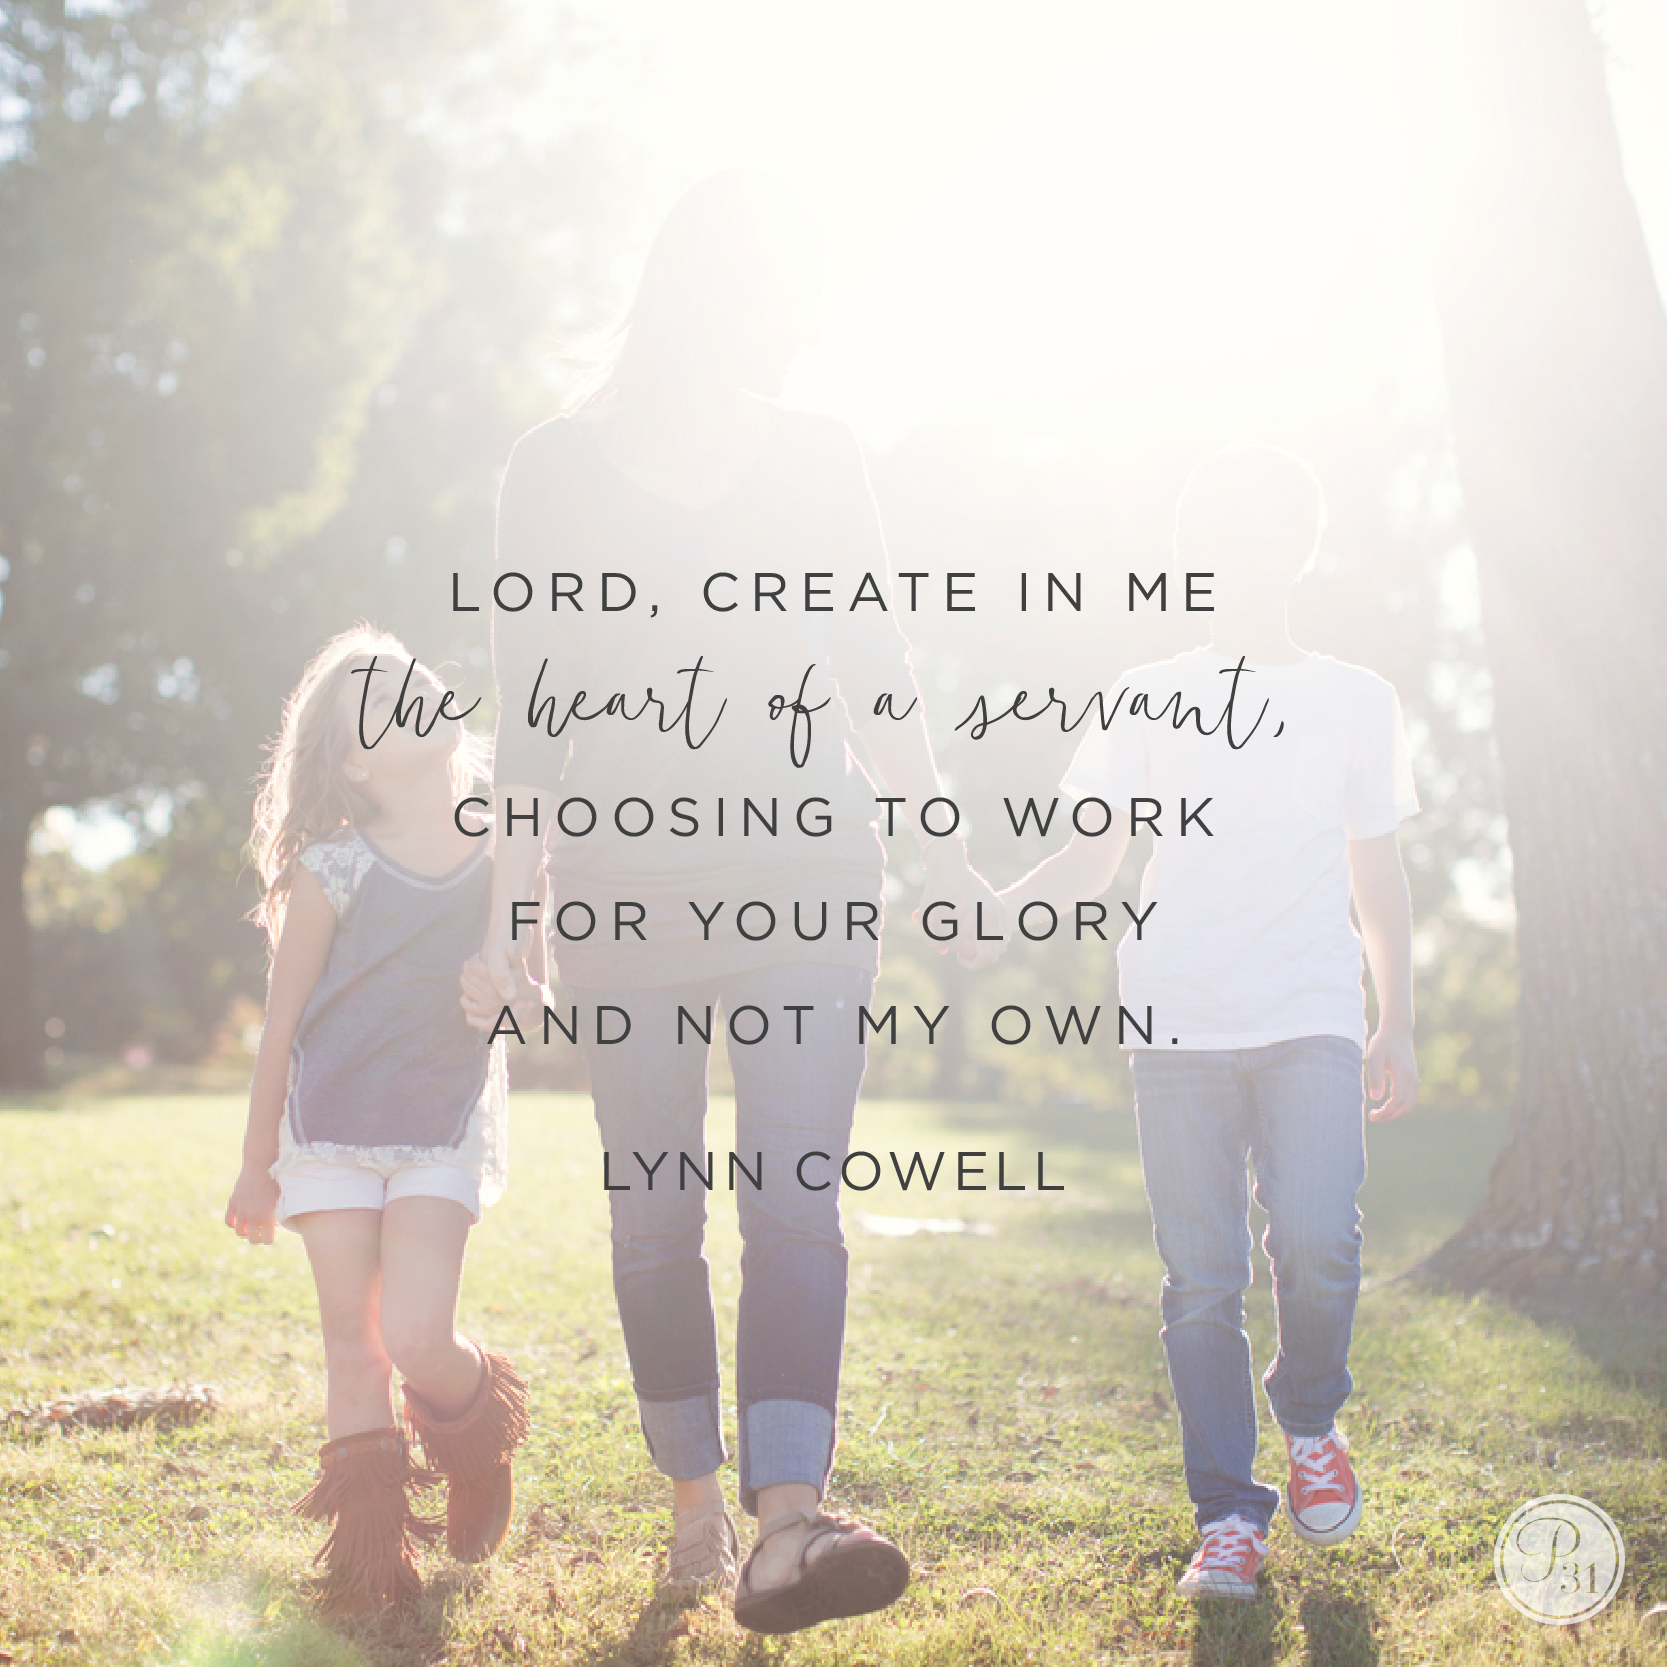 Lord, create in our hearts the hearts of servants. May it be all about You and not about me.